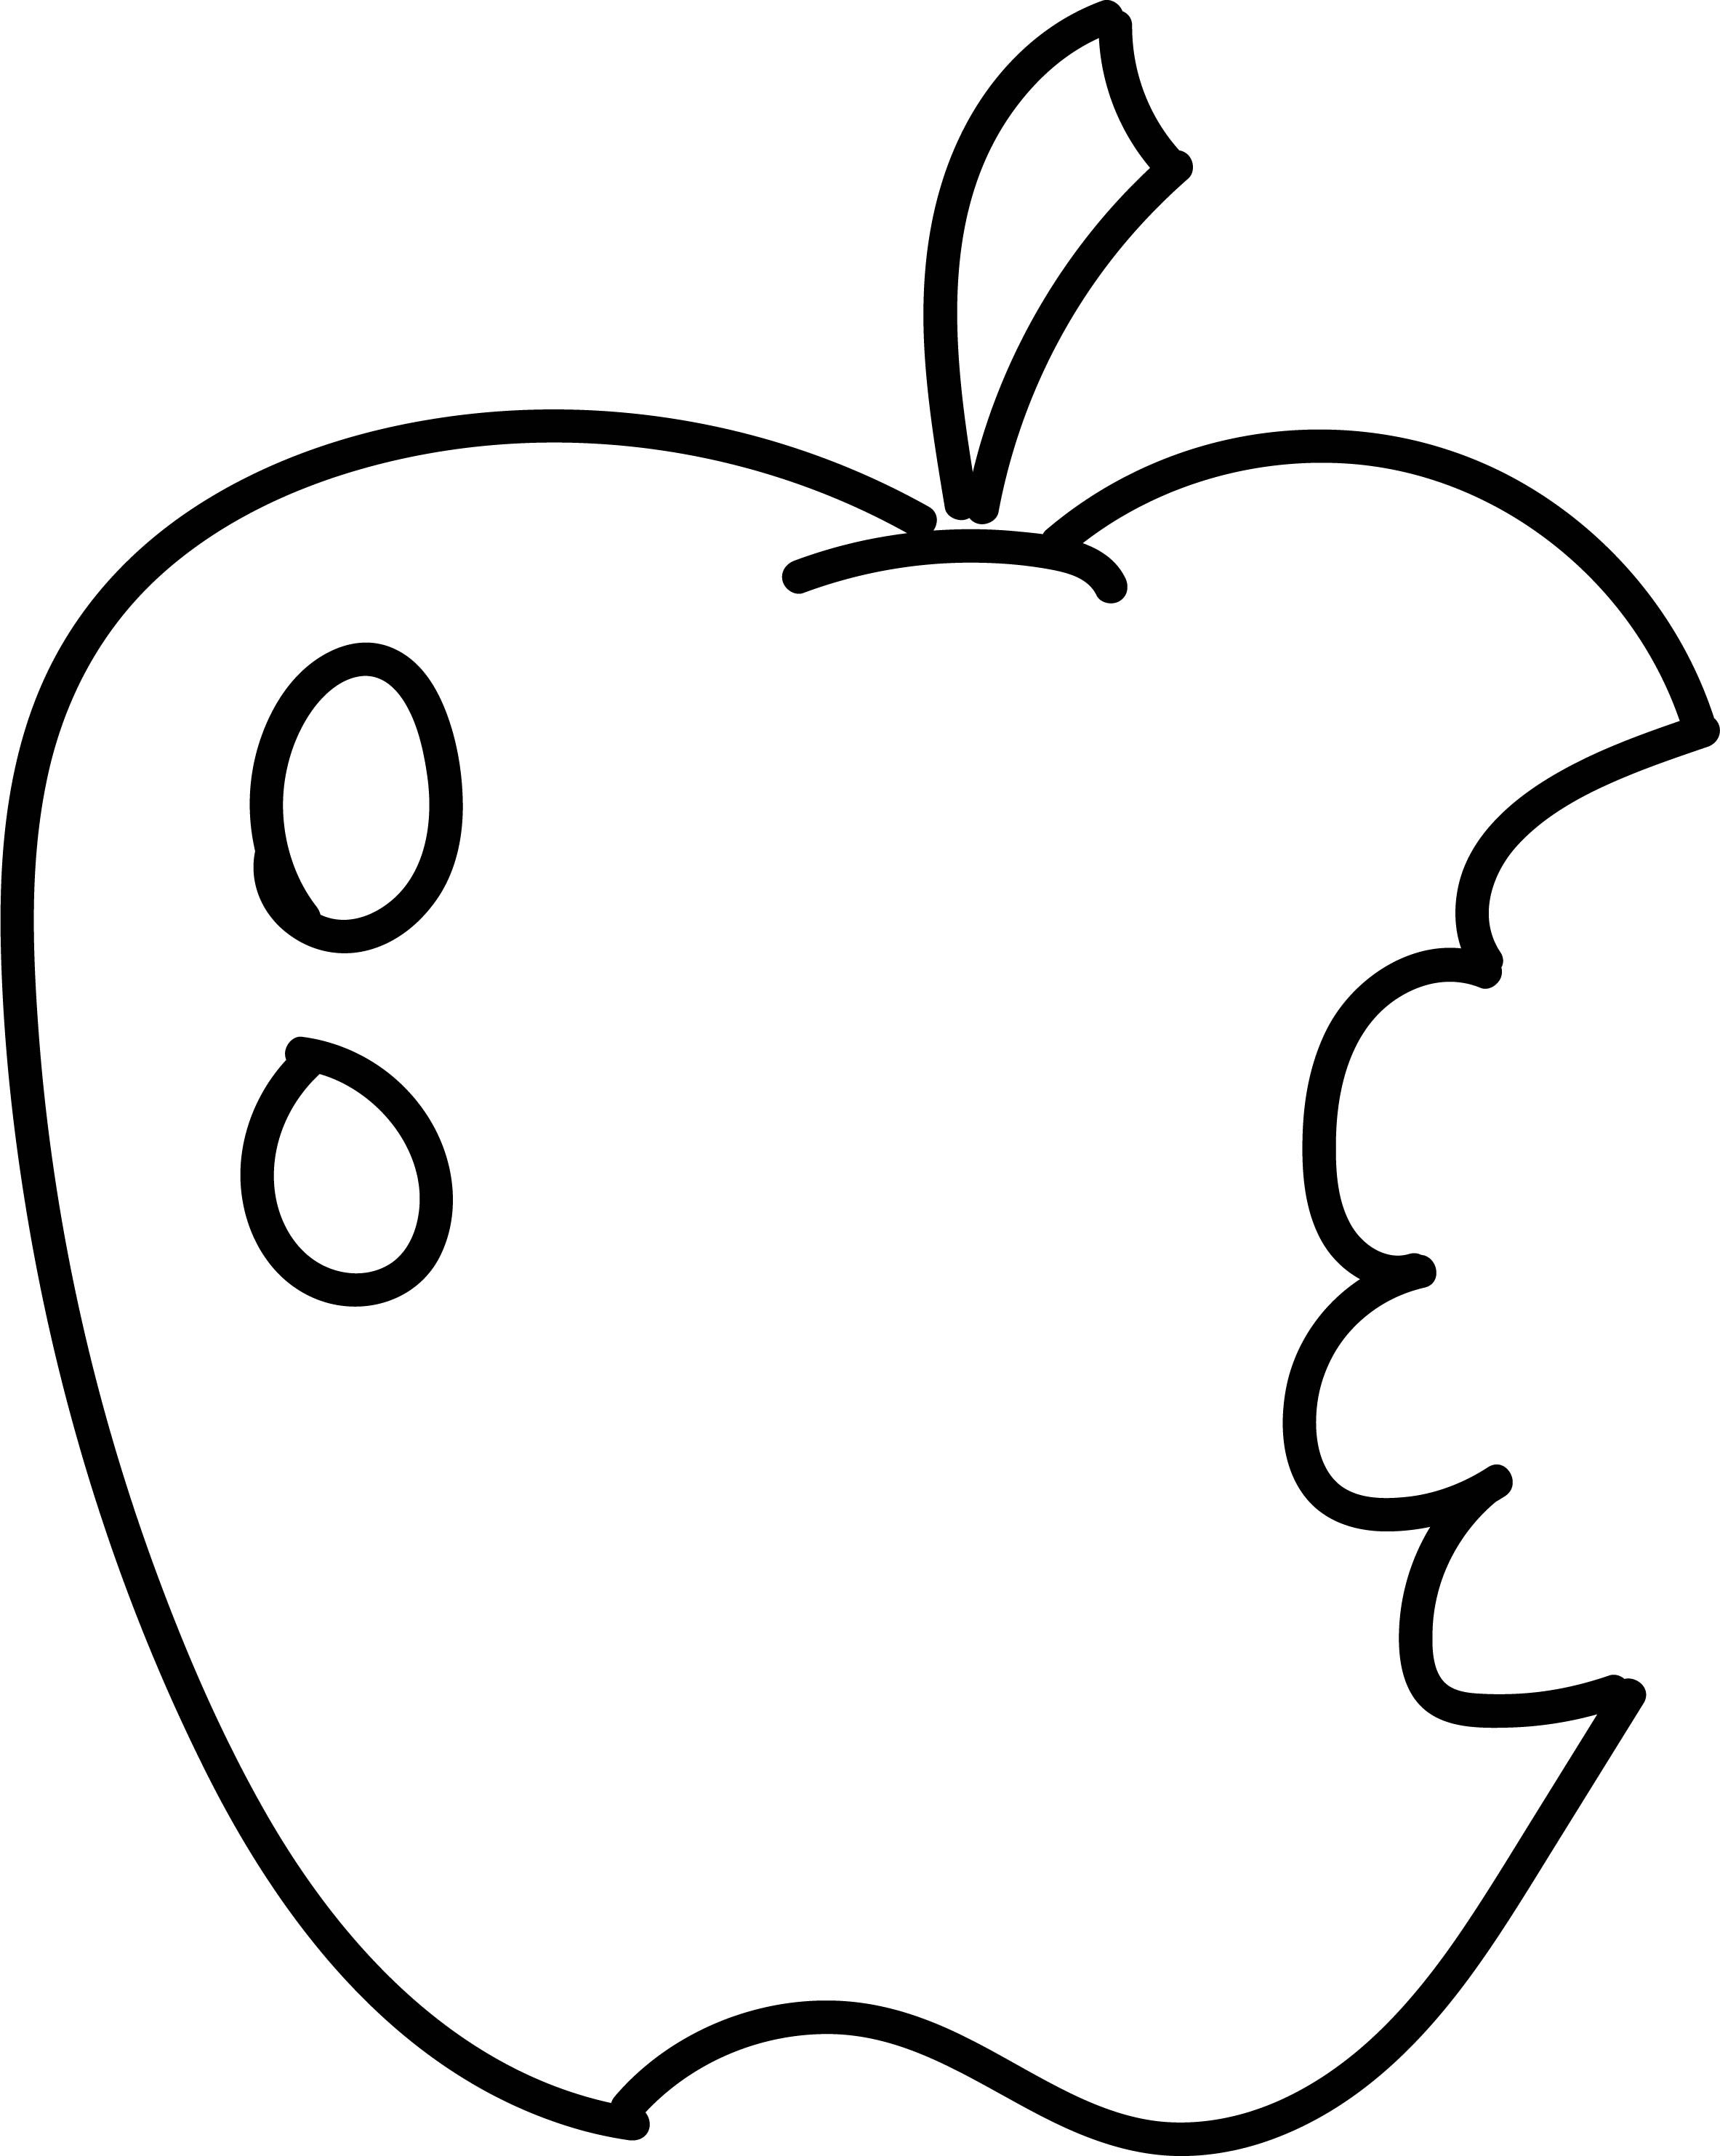 pictures of apples to color apple logo coloring pages at getcoloringscom free of pictures color apples to 1 1